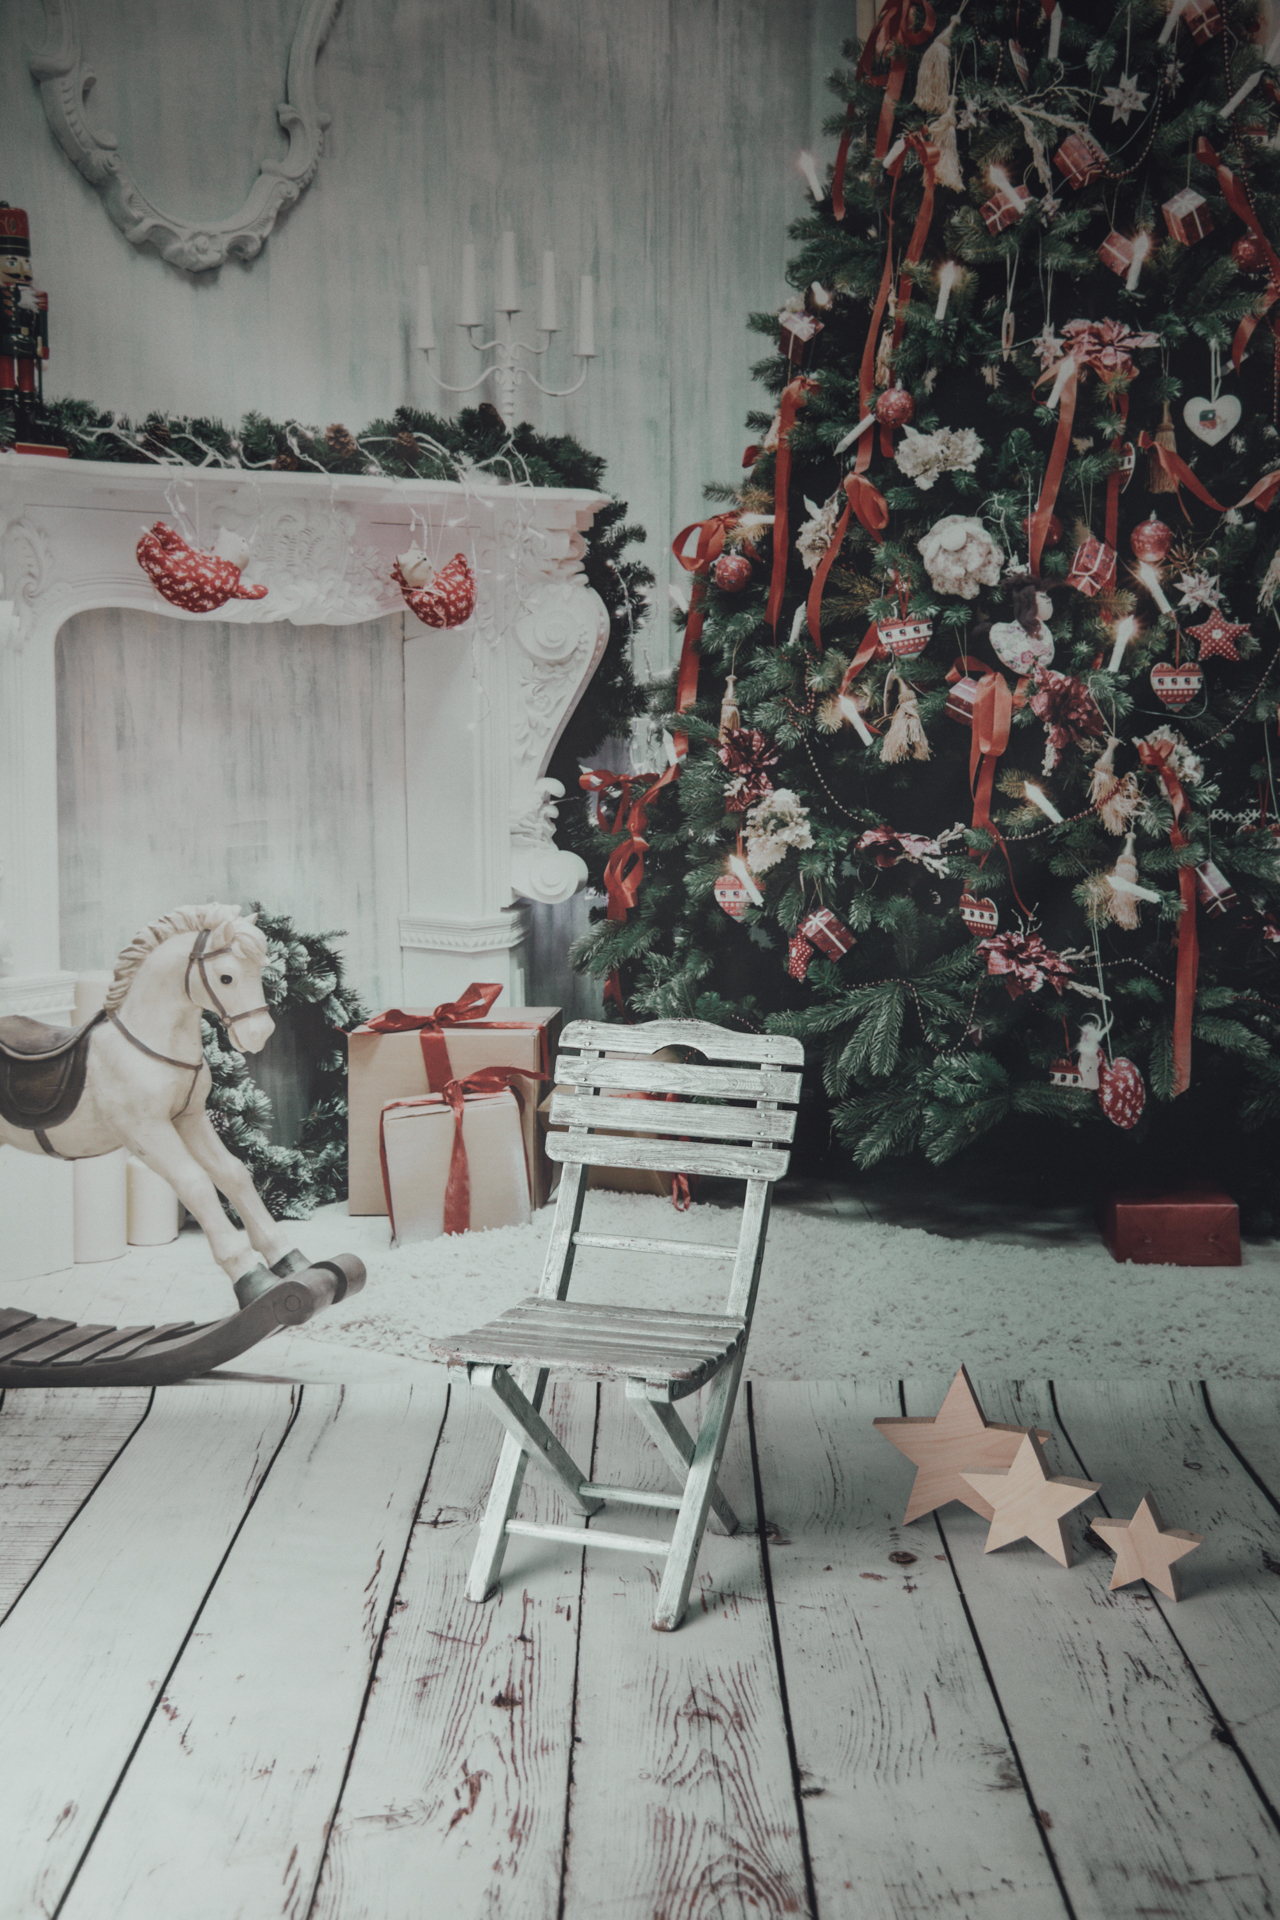 Weihnachtsminis_Vincent21_new_web-56